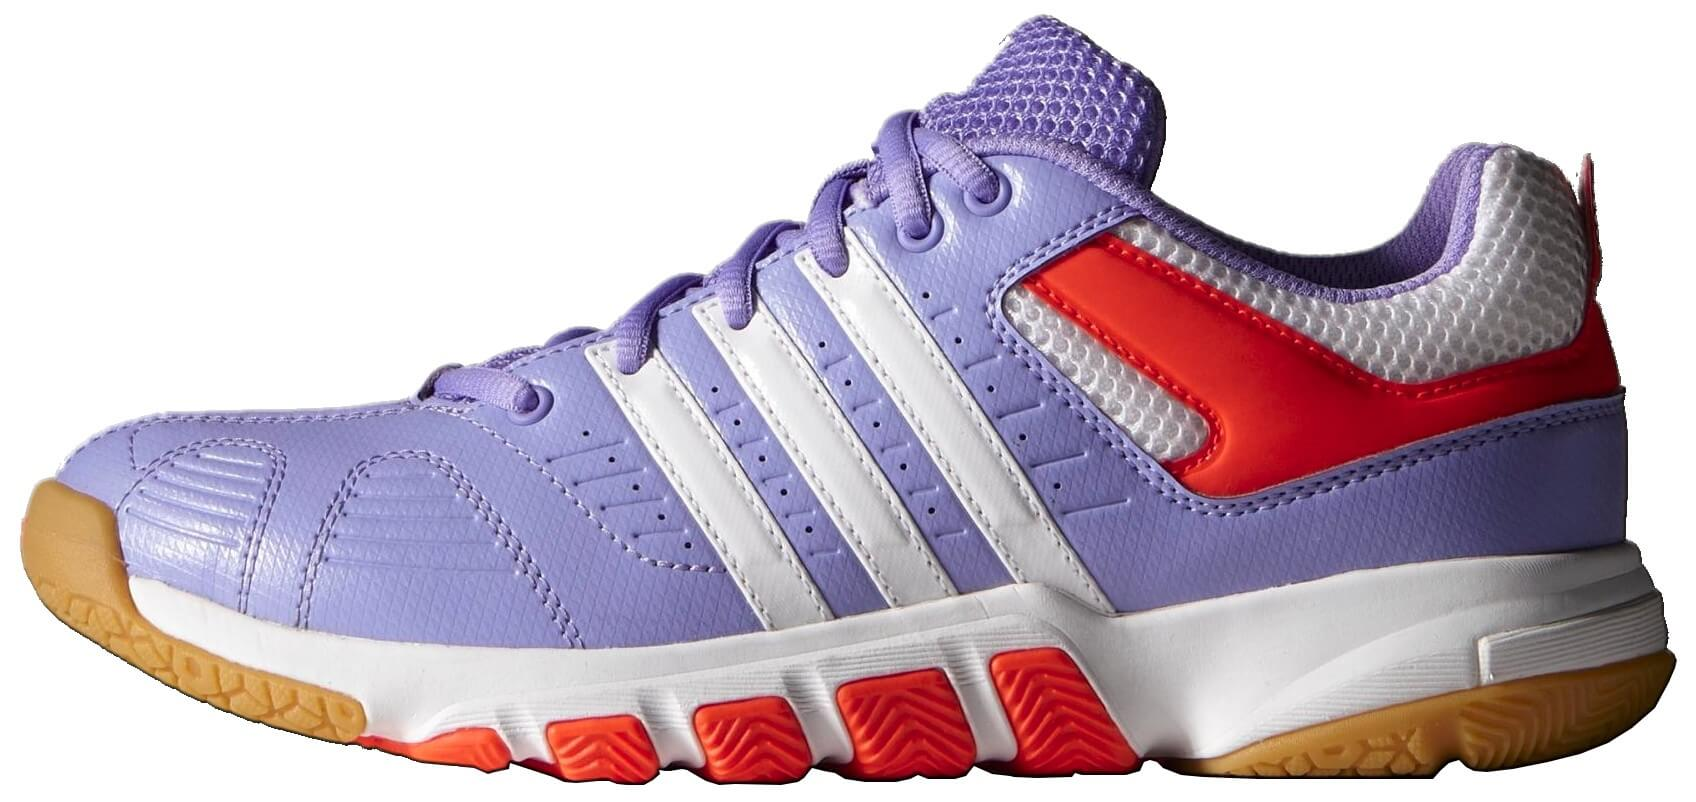 Indoor Homme 5 Bleu Adidas Chaussures Quickforce bmYf6vIgy7